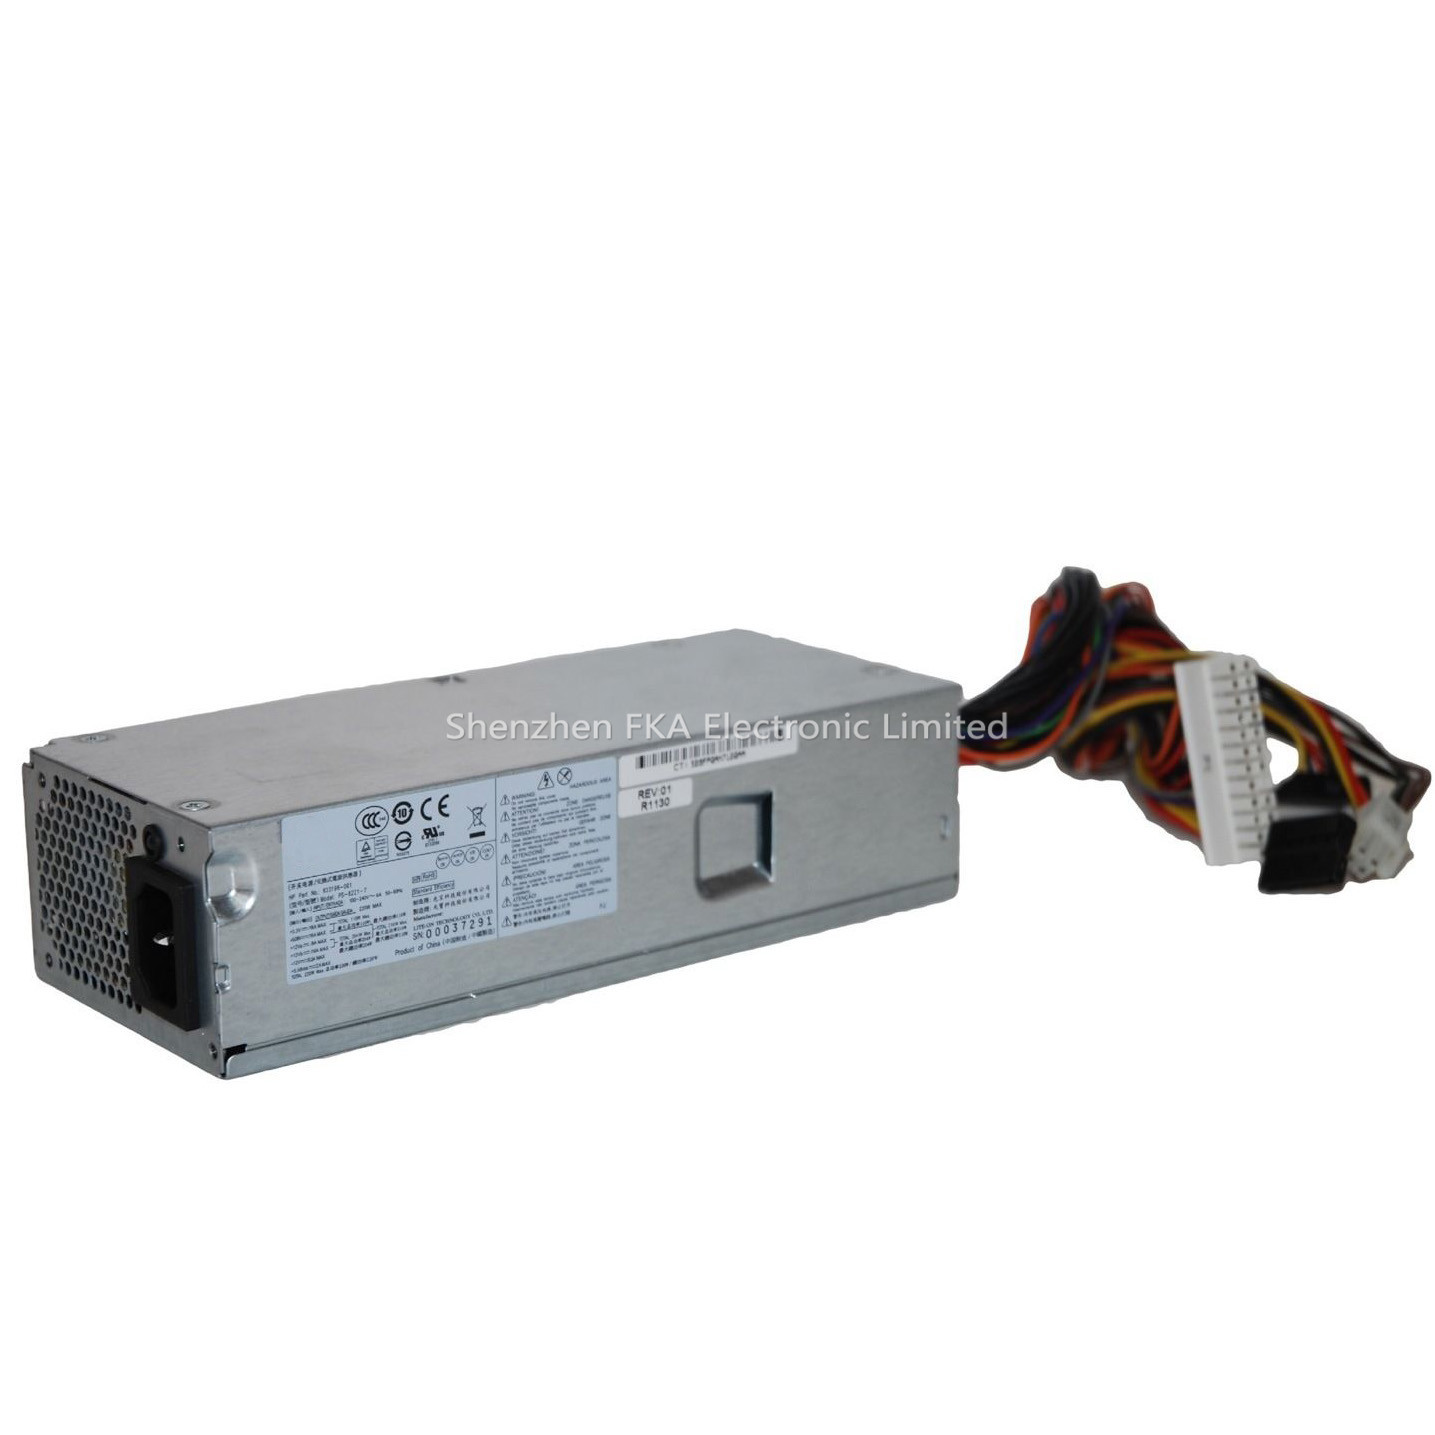 HP Pavilion S5-1000 220W Power Supply Unit PSU 633196-001 PS-6221-7